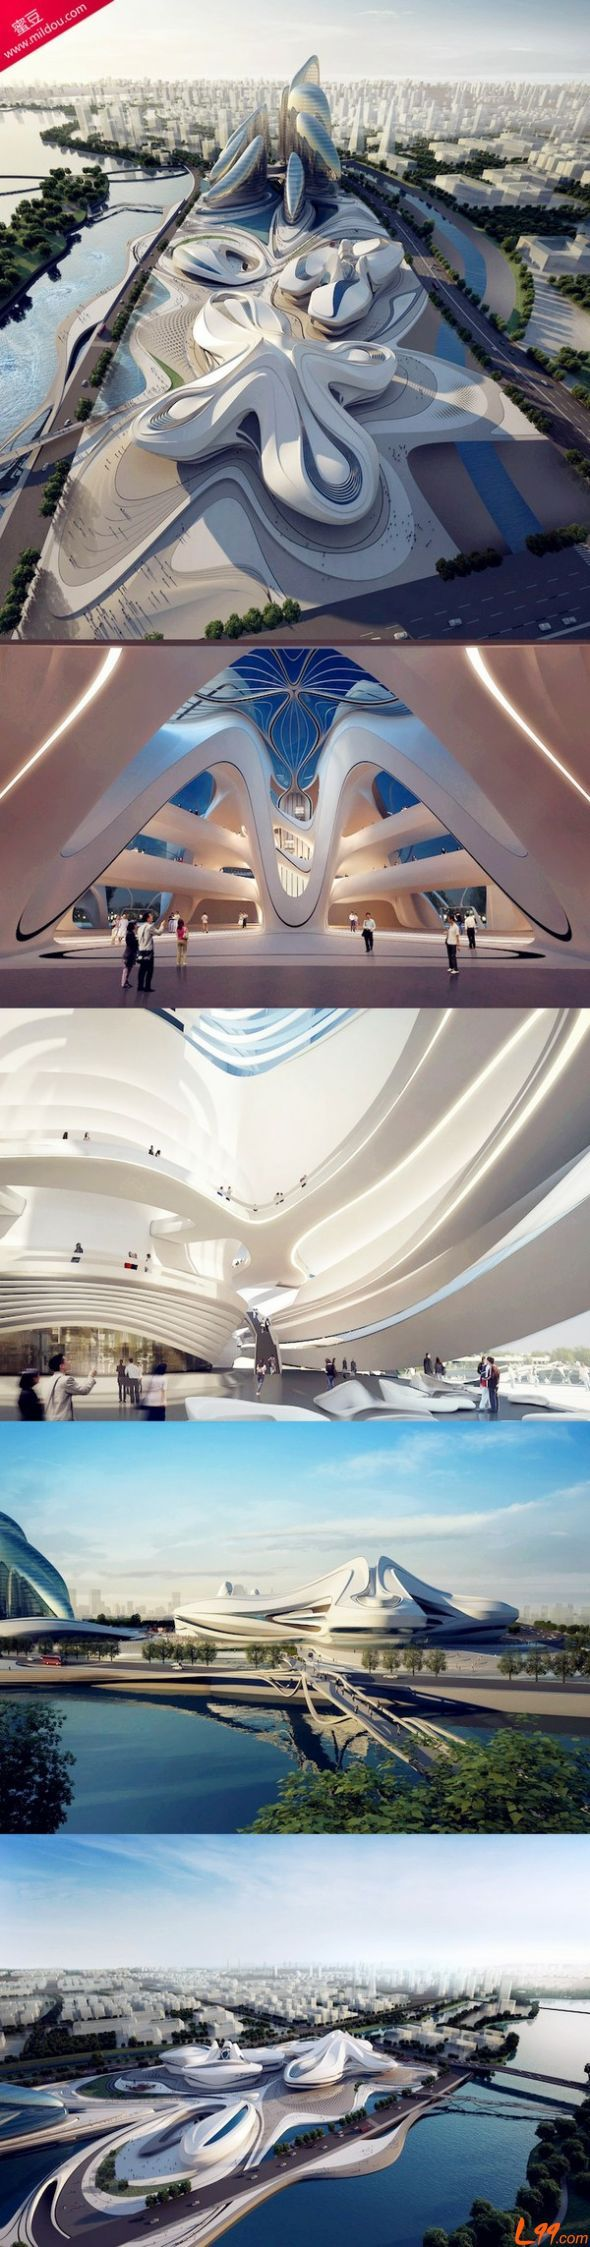 Futuristic architecture will be finished in 2015, in China ☮k☮ #architecture